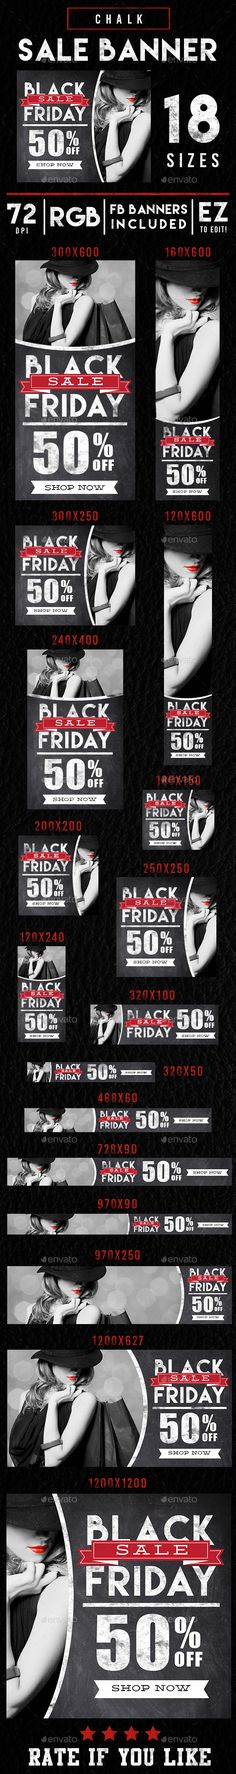 Chalk Black Friday Sales Banner Ads  — PSD Template #glossy #black friday • Download ➝ https://graphicriver.net/item/chalk-black-friday-sales-banner-ads/18160267?ref=pxcr